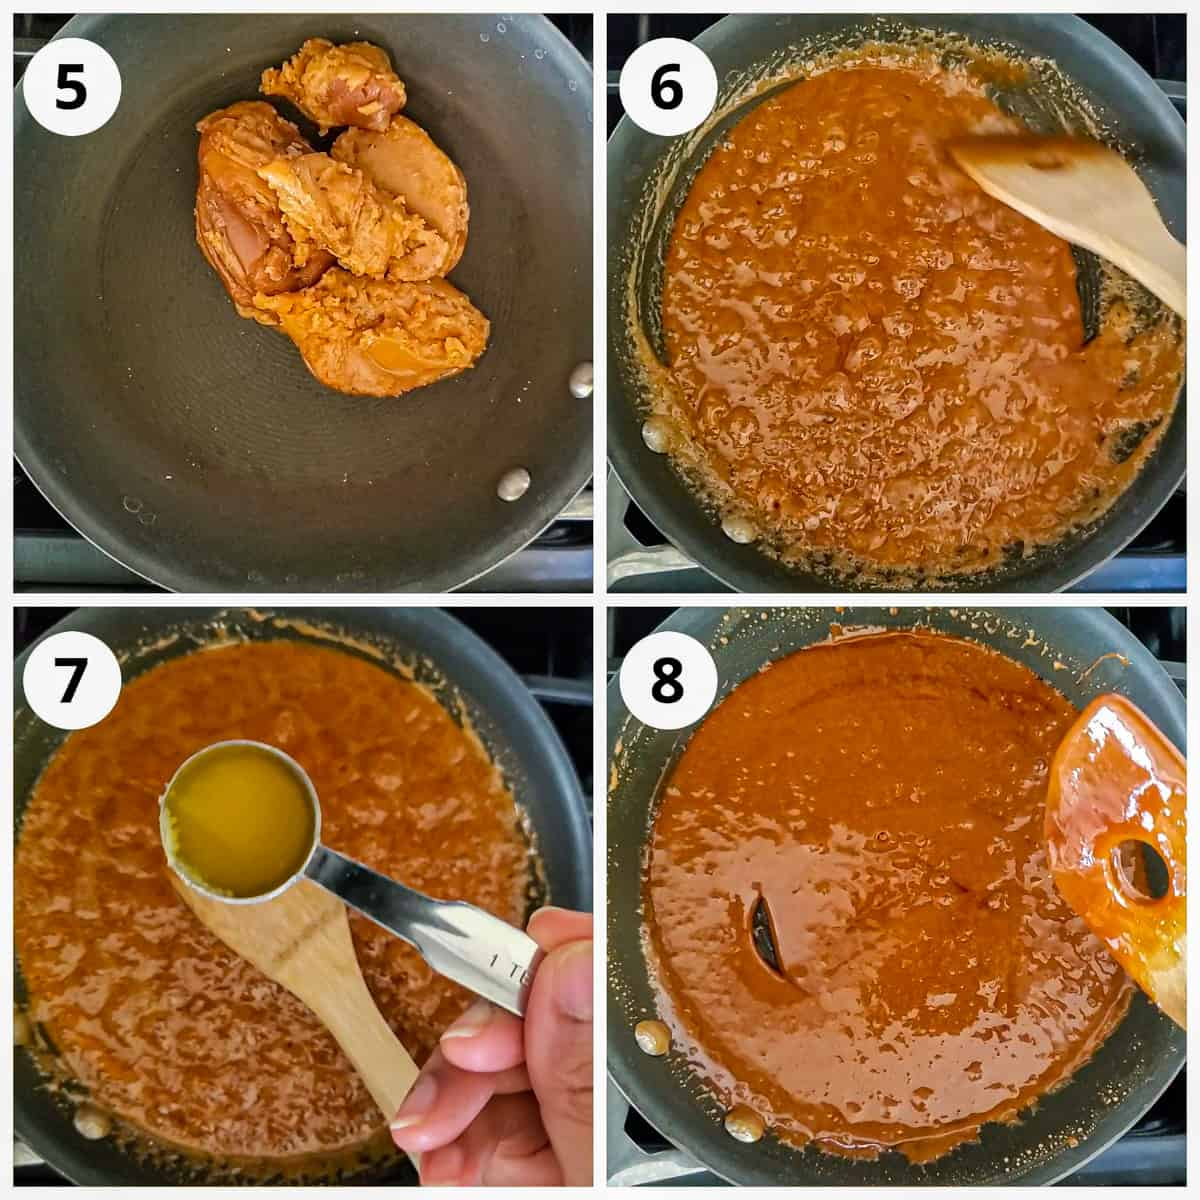 melting jaggery in a pan with ghee to make syrup for chikki